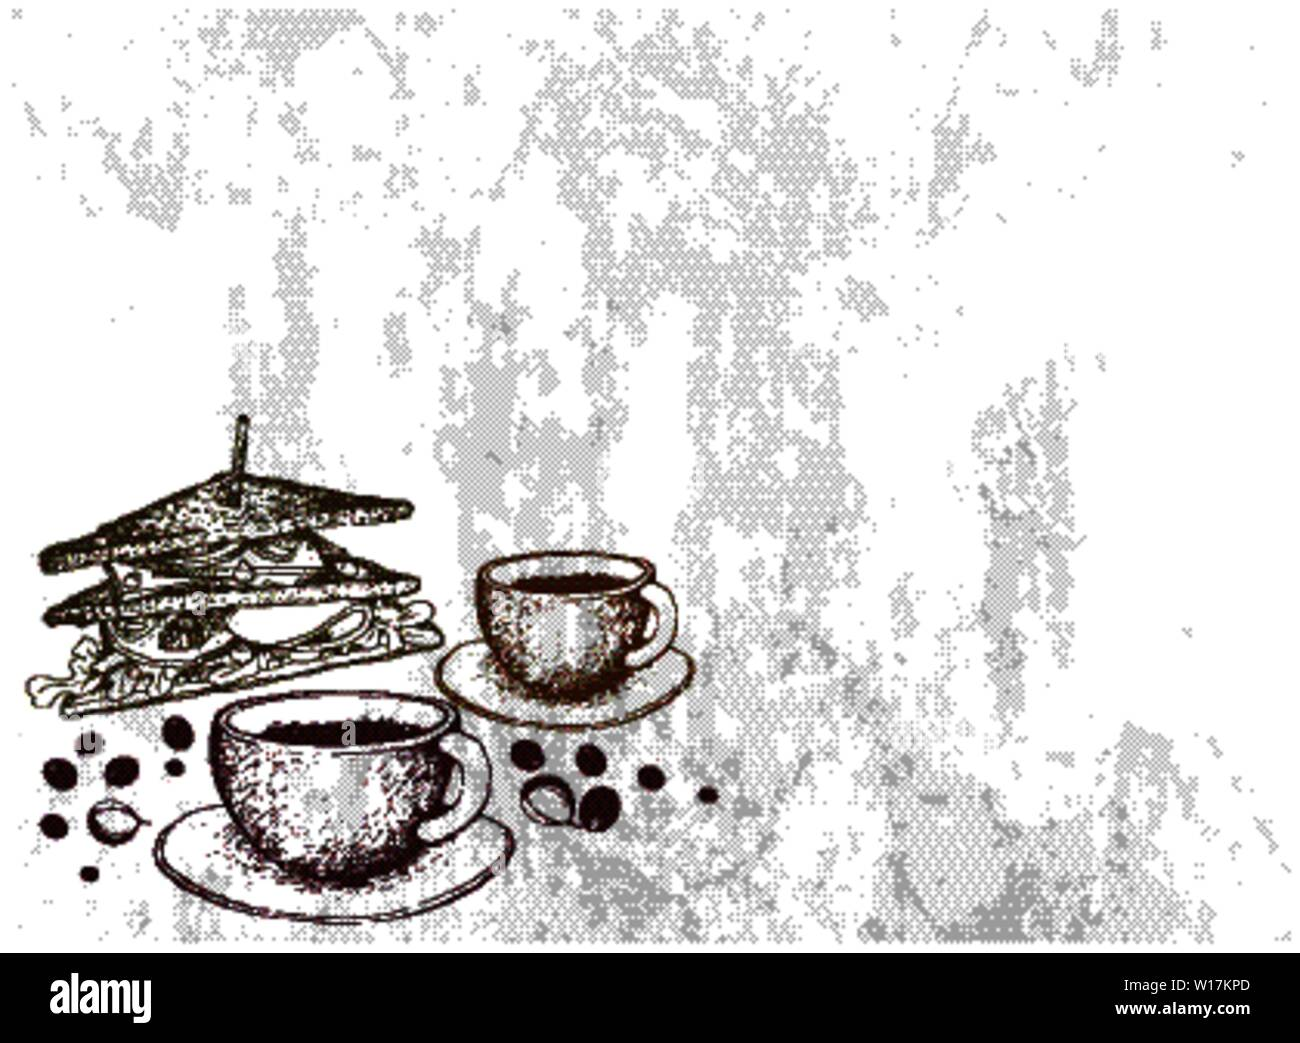 Coffee First, Illustration Hand Drawn Sketch of Hot Coffee with Grilled Sandwich. Stock Vector